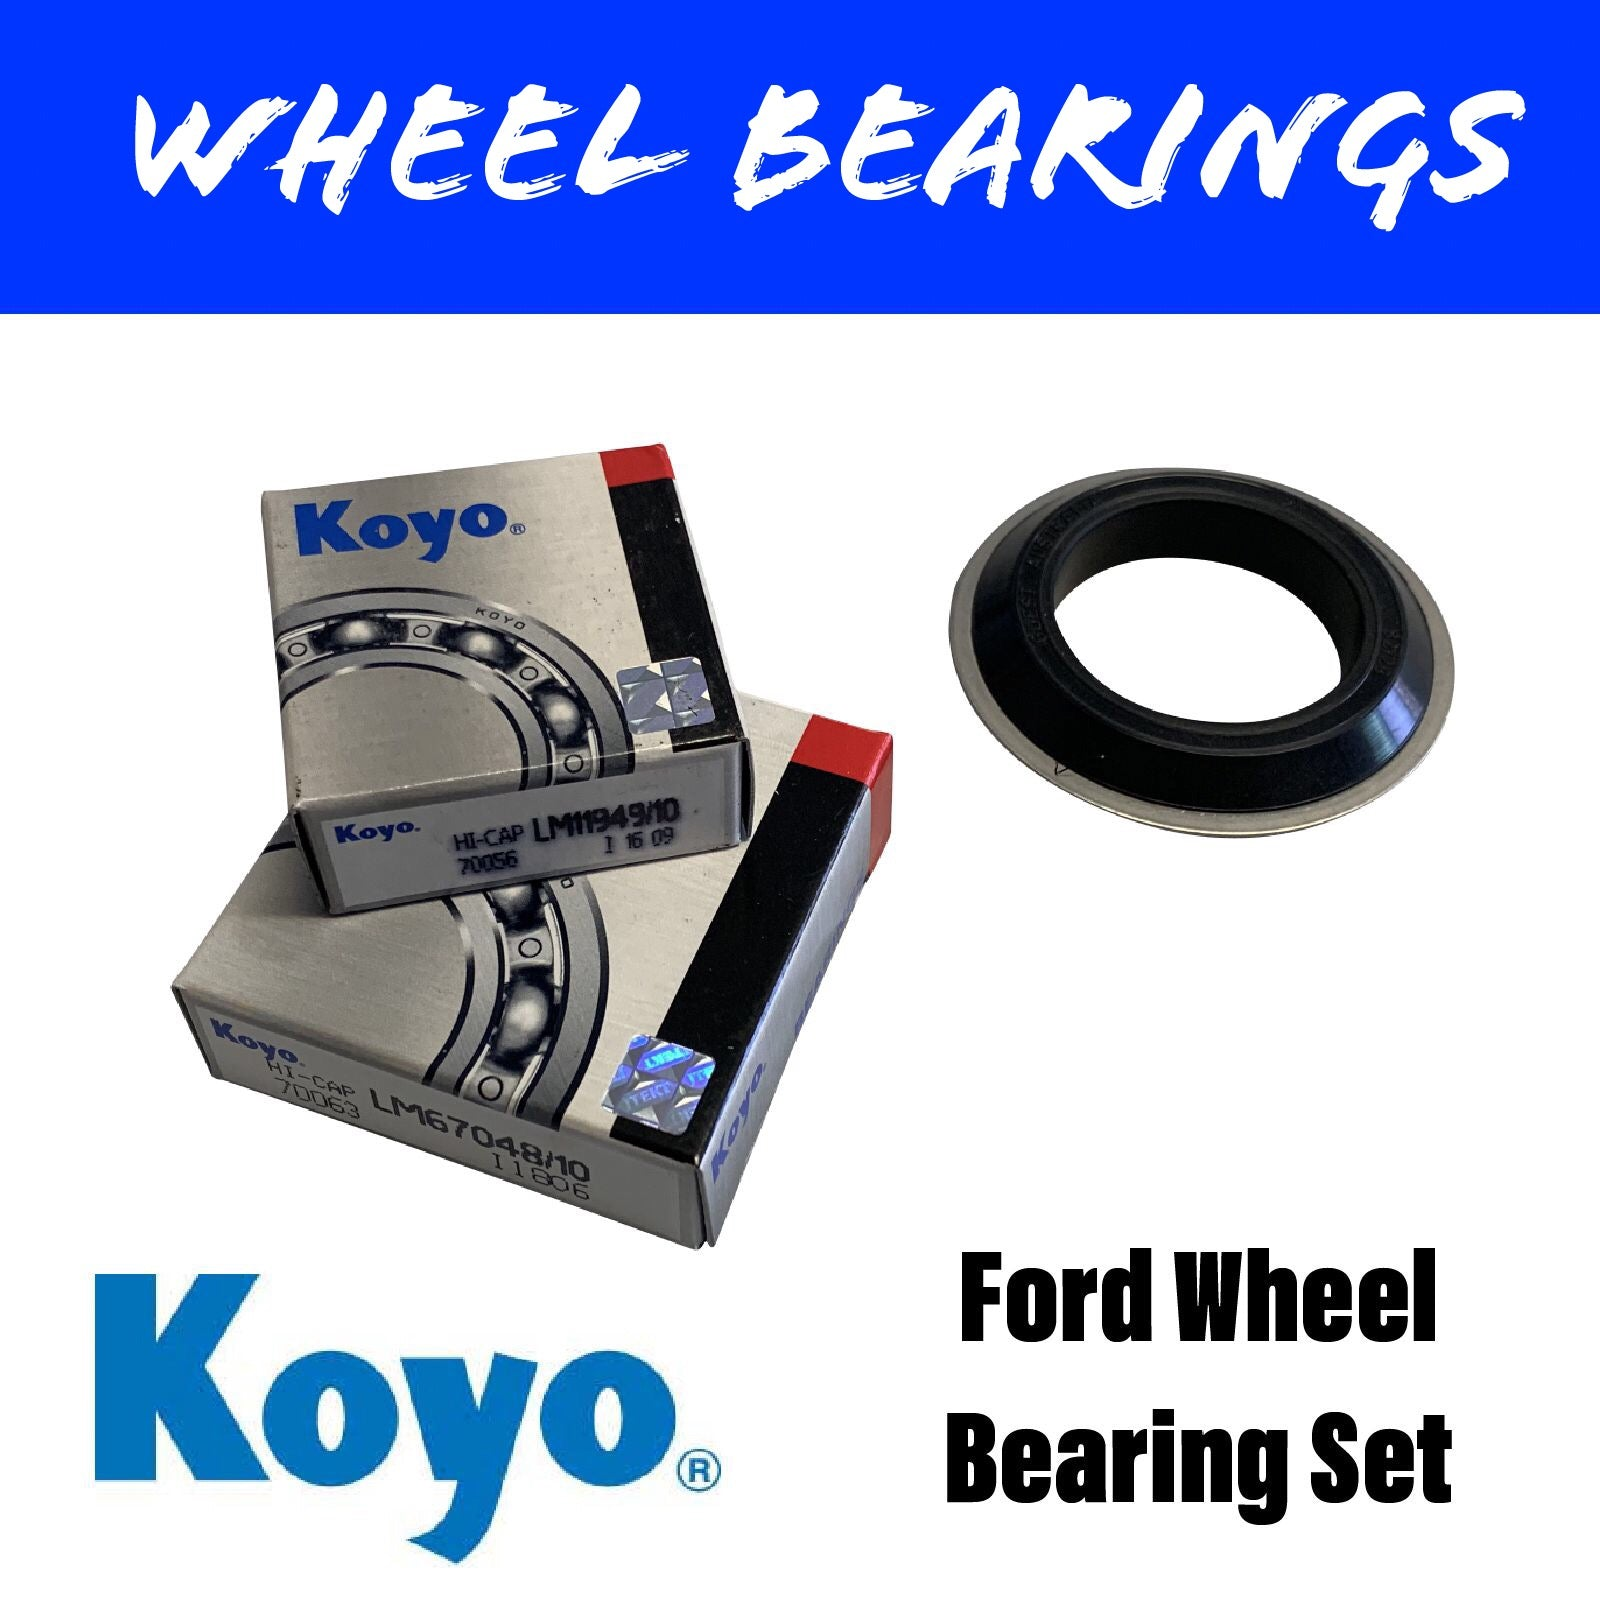 KOYO FORD SL Wheel Bearing Set Marine